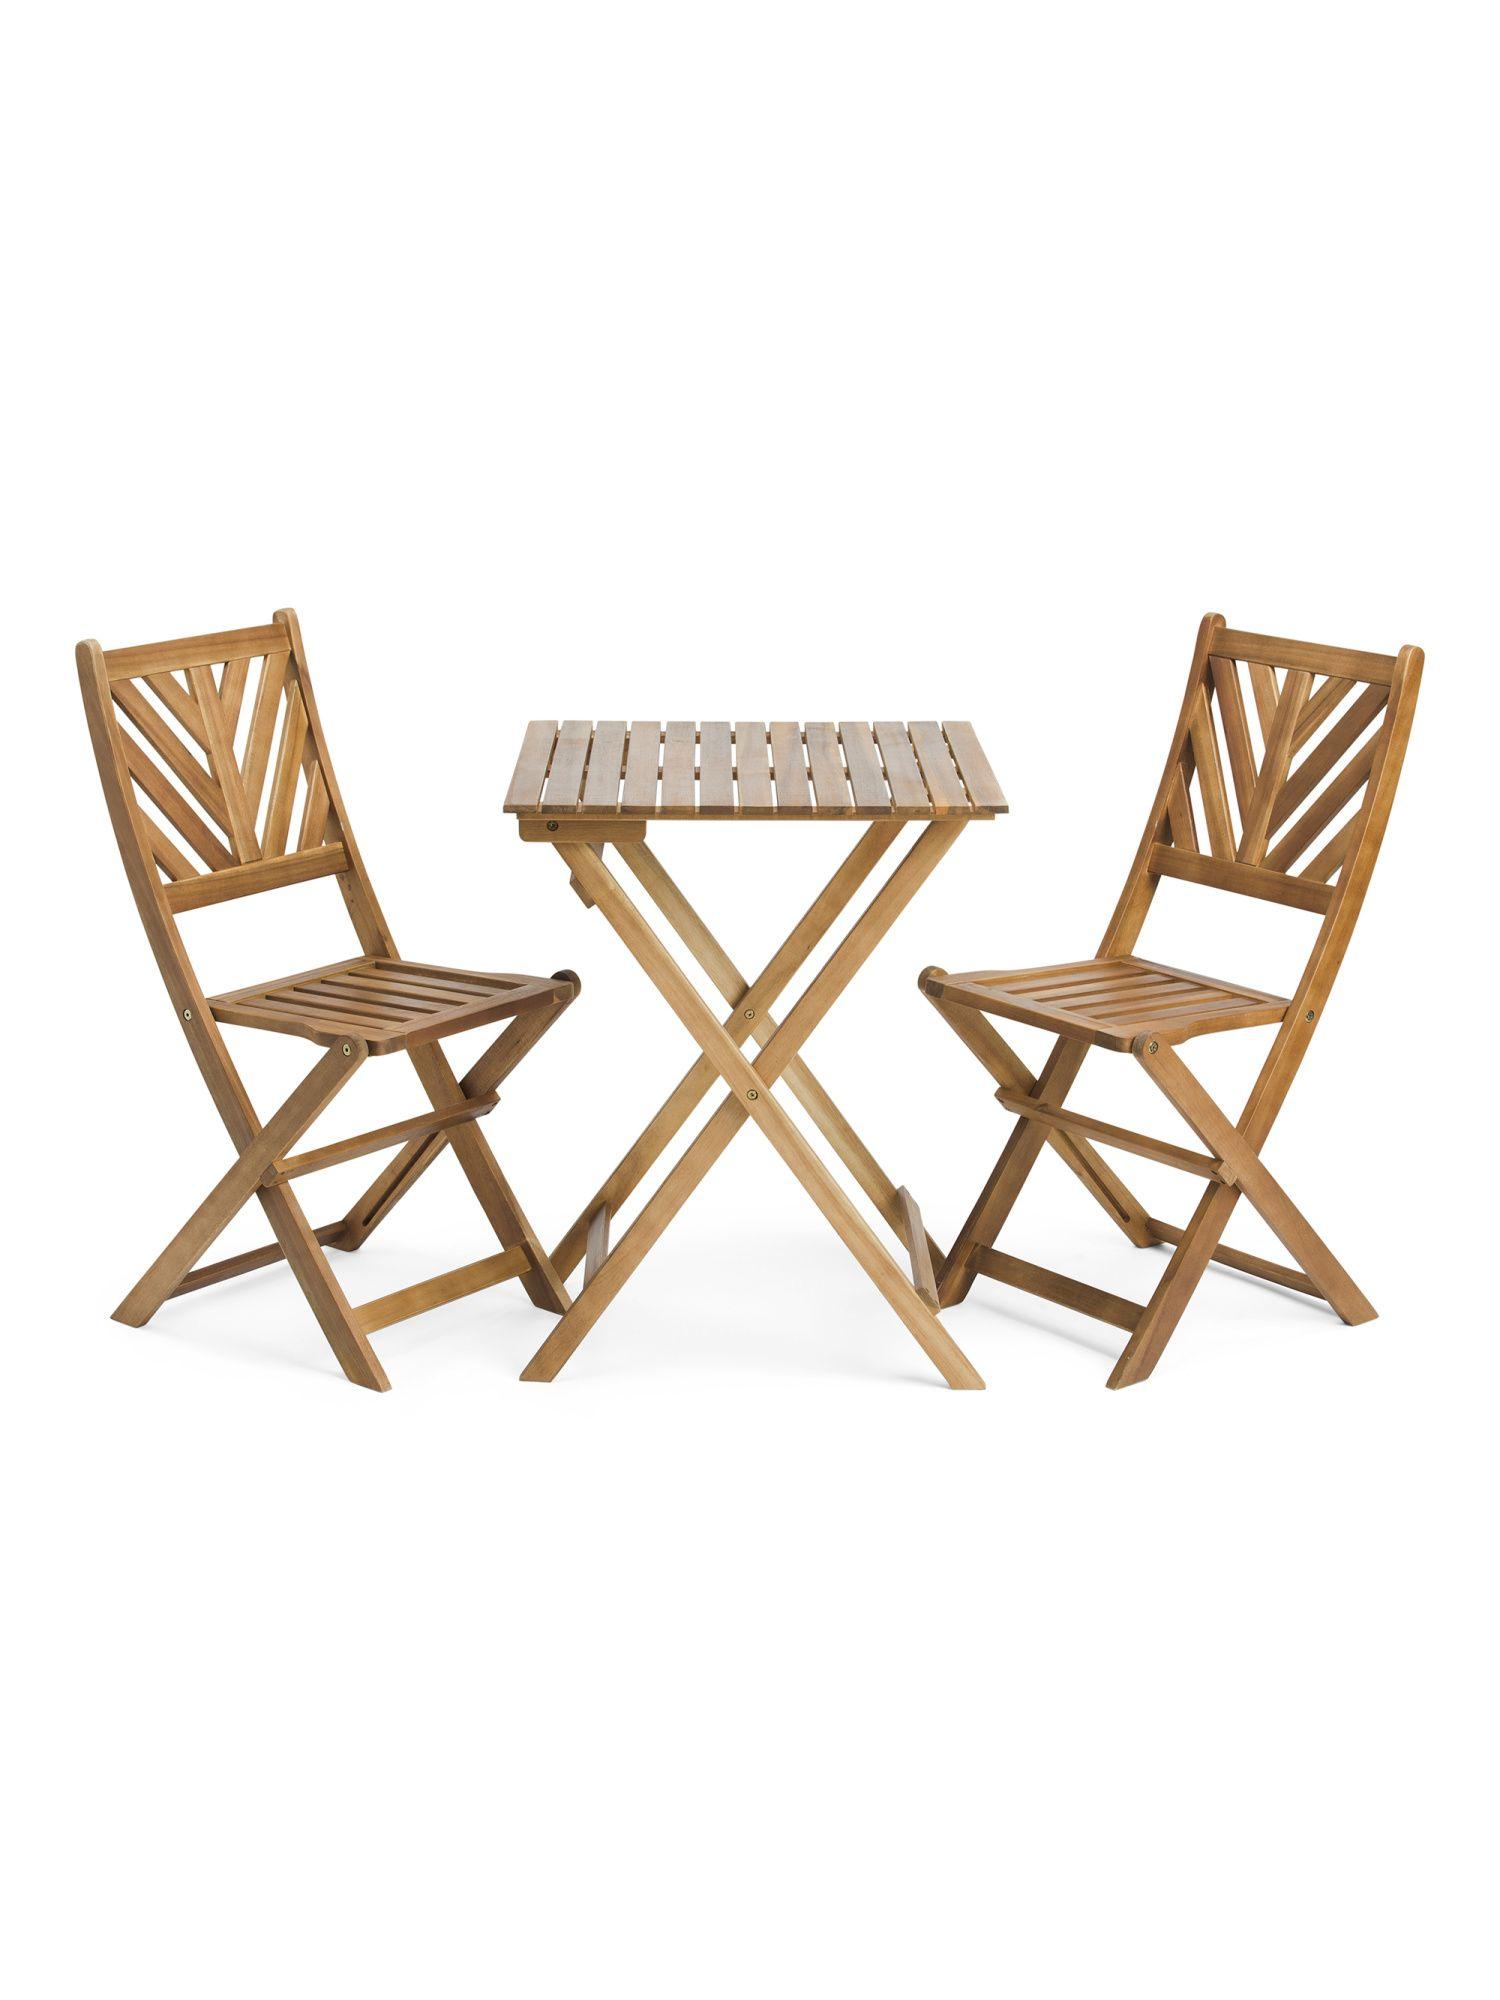 Outdoor Wood Bistro Set Outdoor Wood Outdoor Wicker Rocking Chairs Outdoor Patio Decor